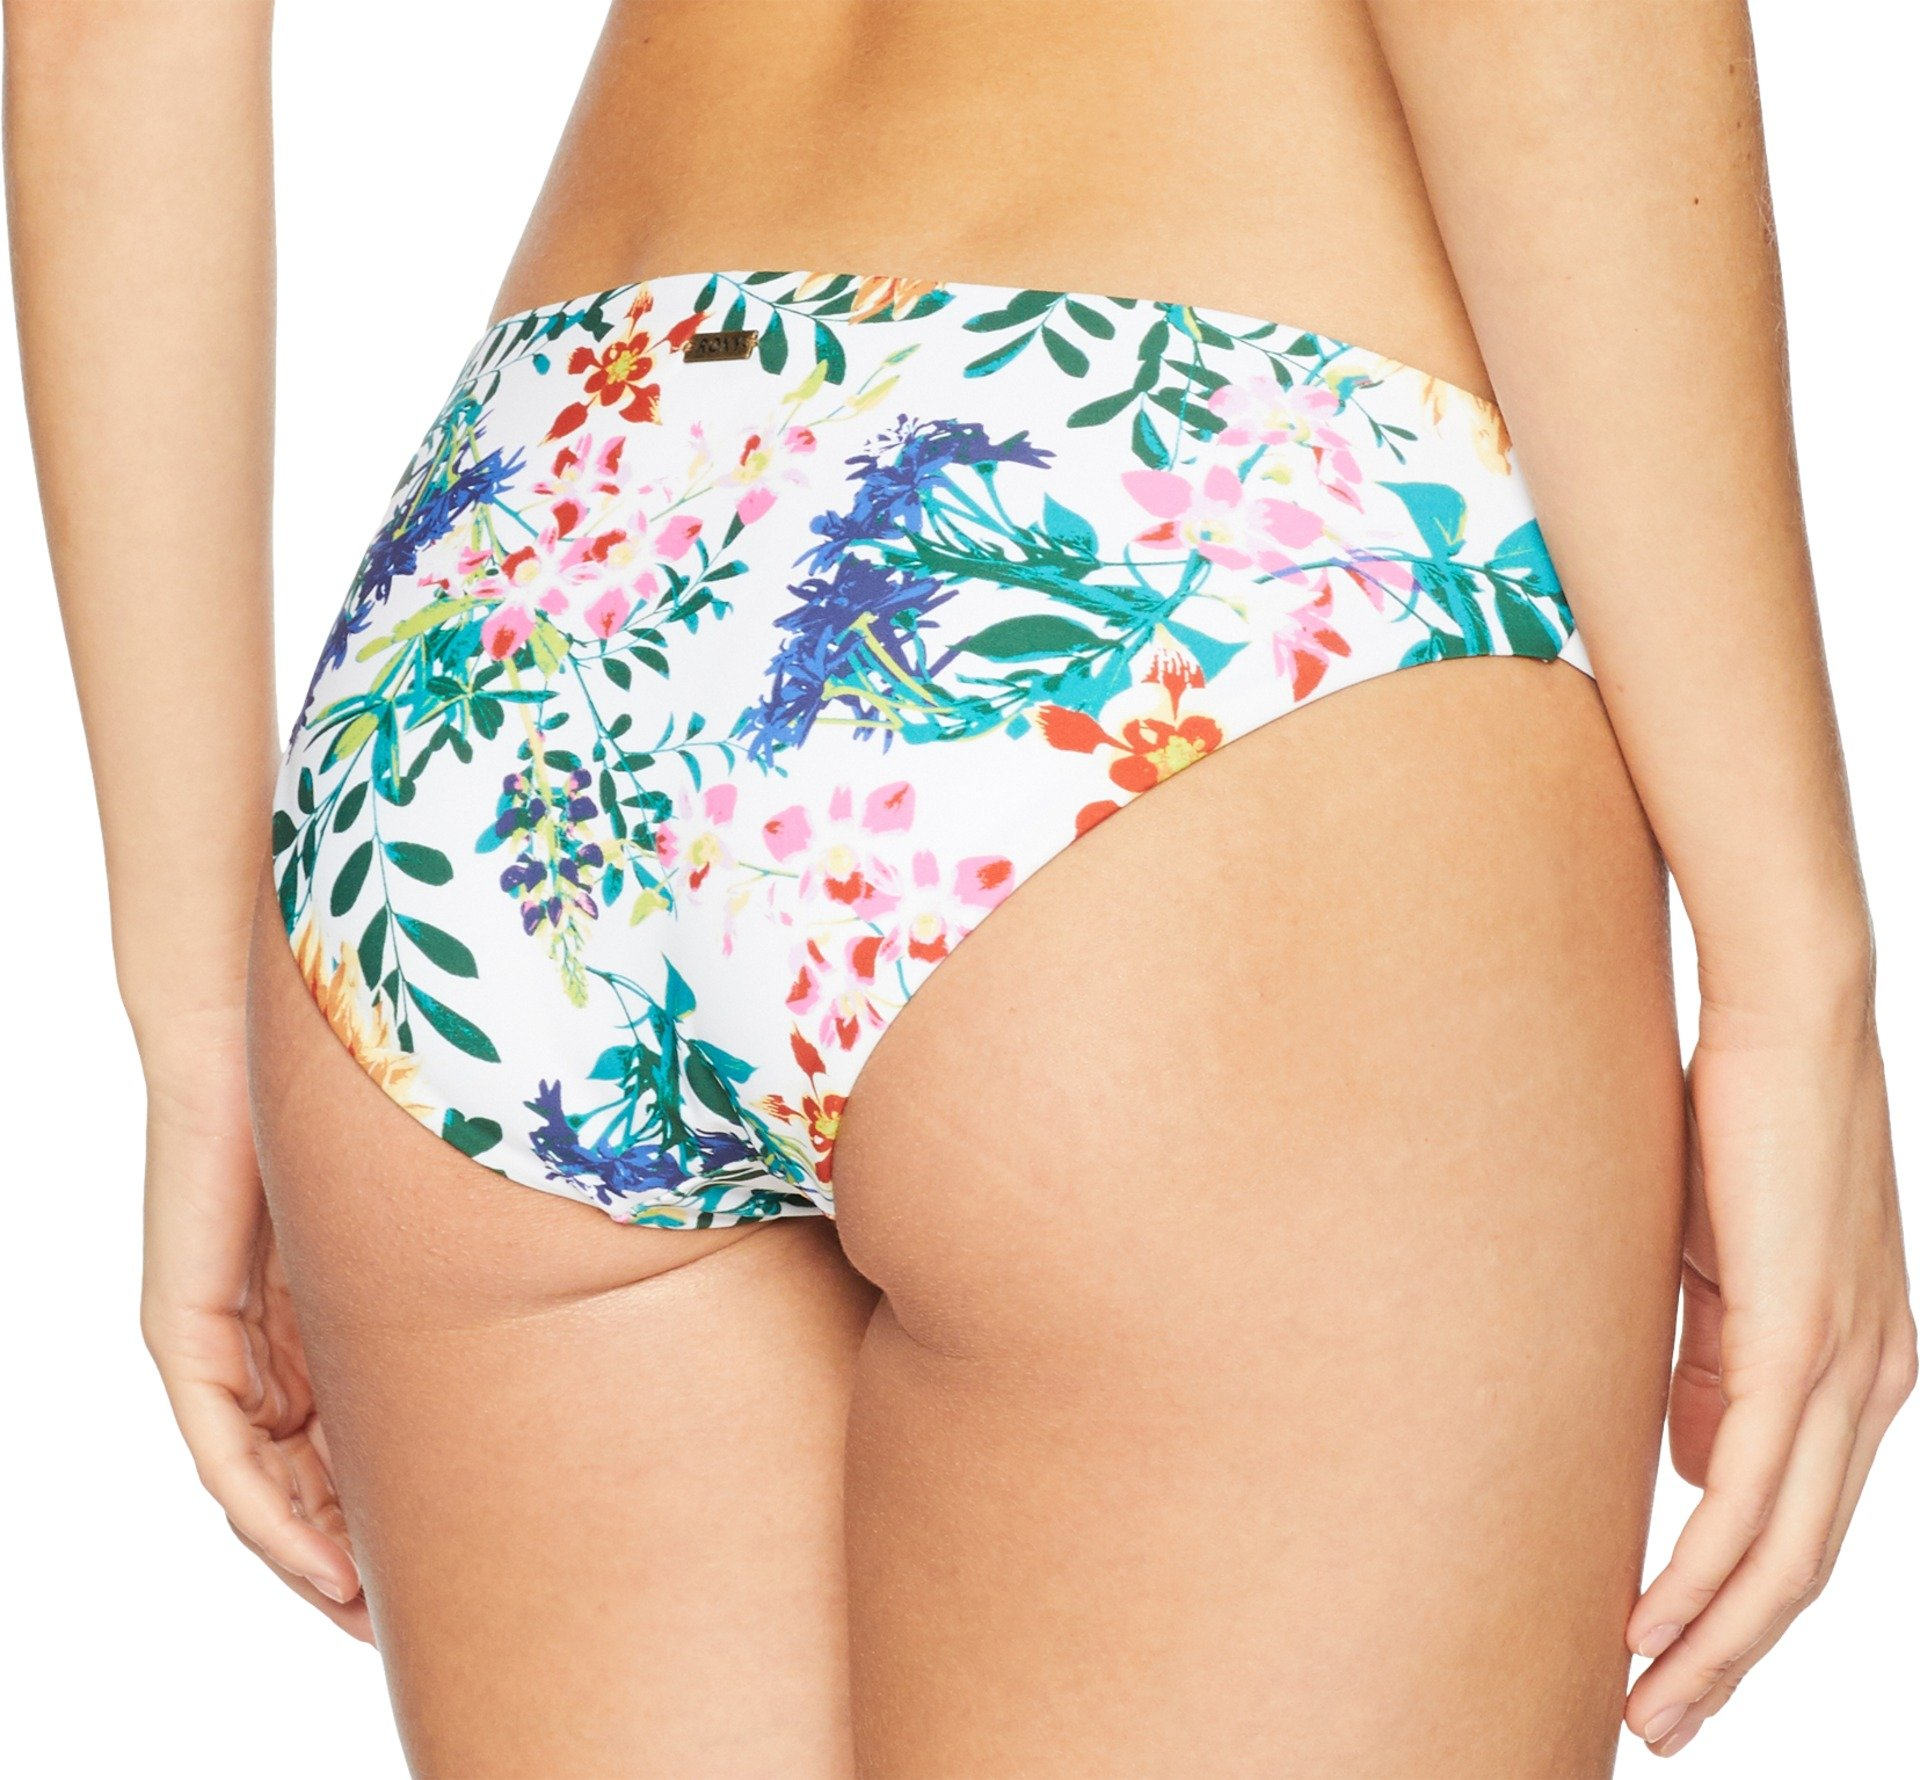 Roxy Junior's Solid Softly Love Reversible 70s Bikini Bottom, Bright White Floral Soiree, S by Roxy (Image #3)